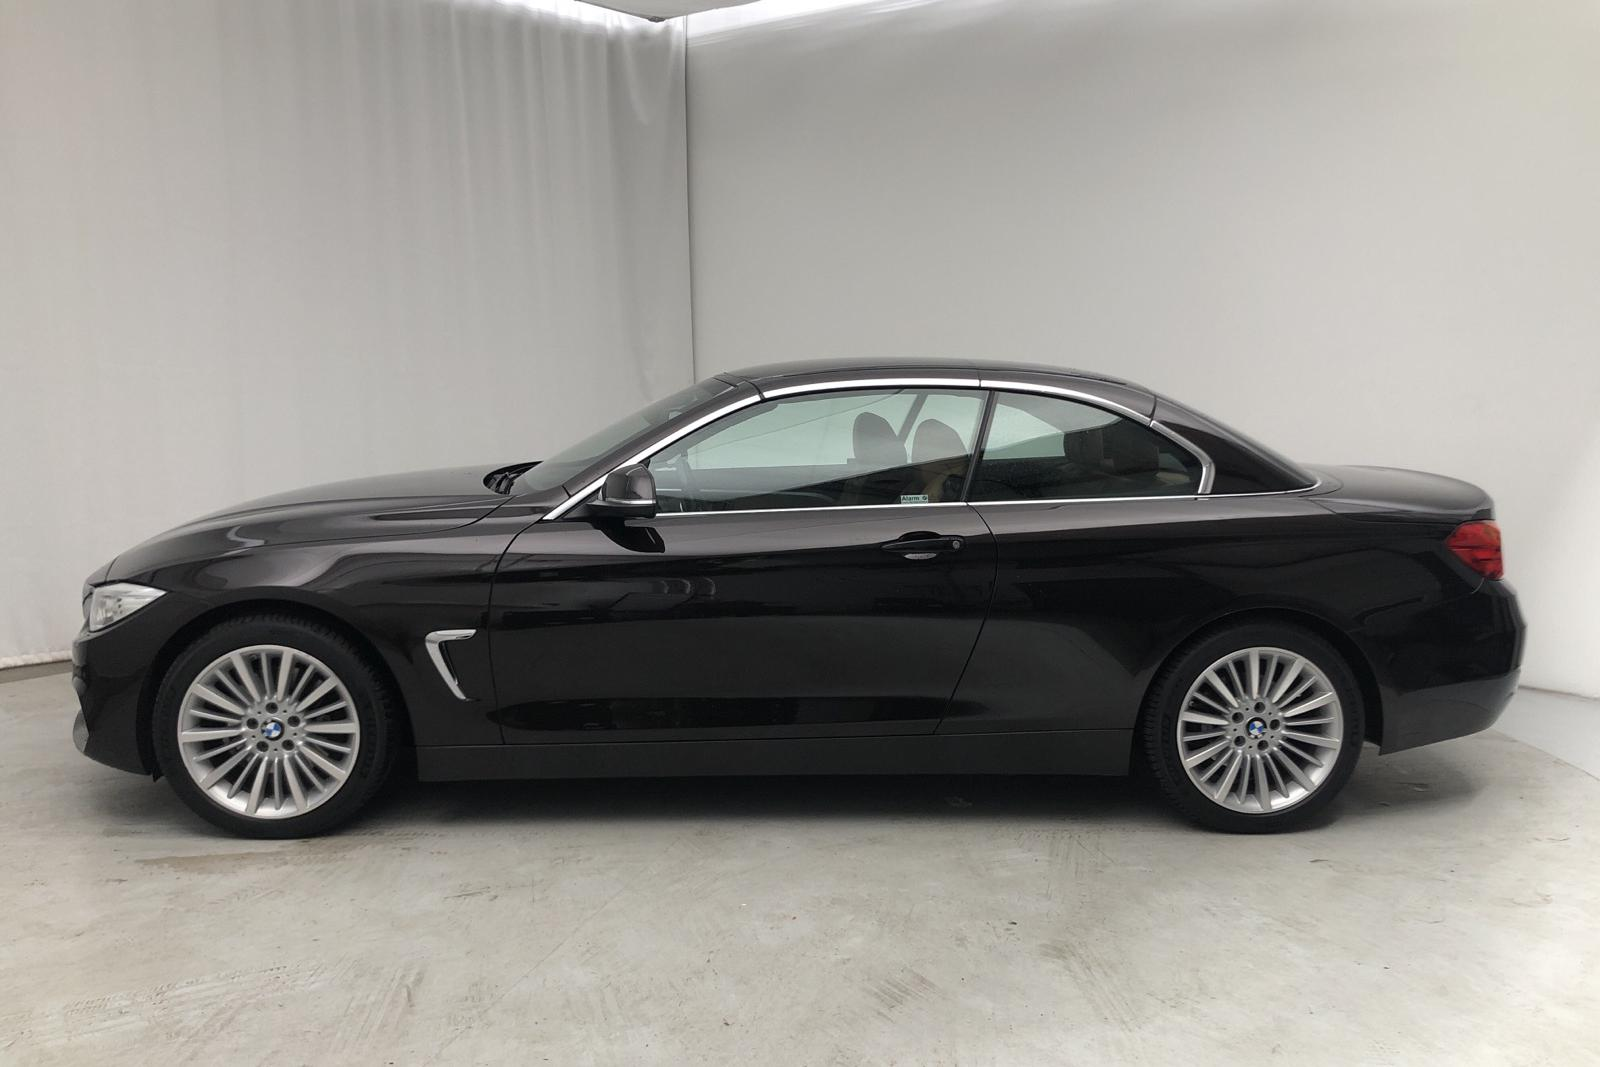 BMW 428i xDrive Cabriolet, F33 (245hk) - 81 000 km - Automatic - brown - 2015